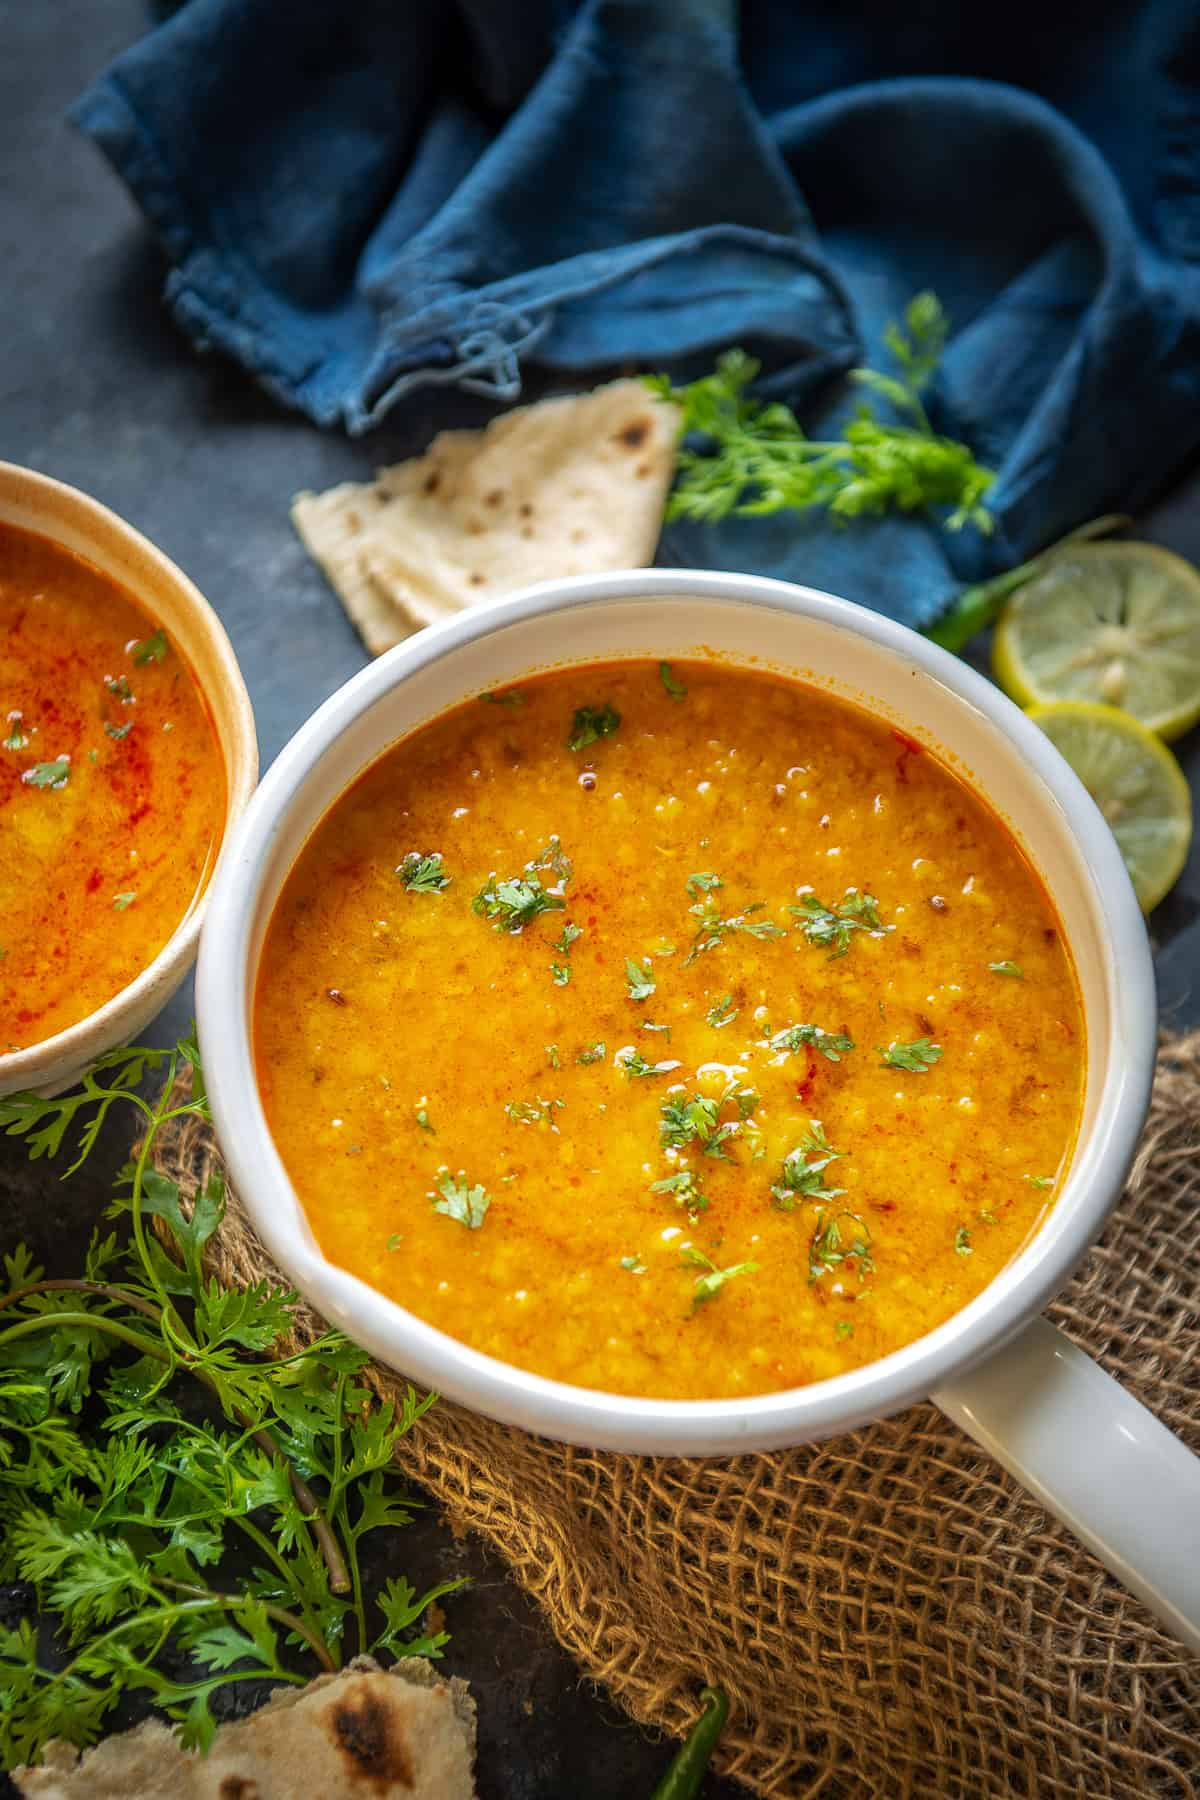 Toor Dal served in a bowl.